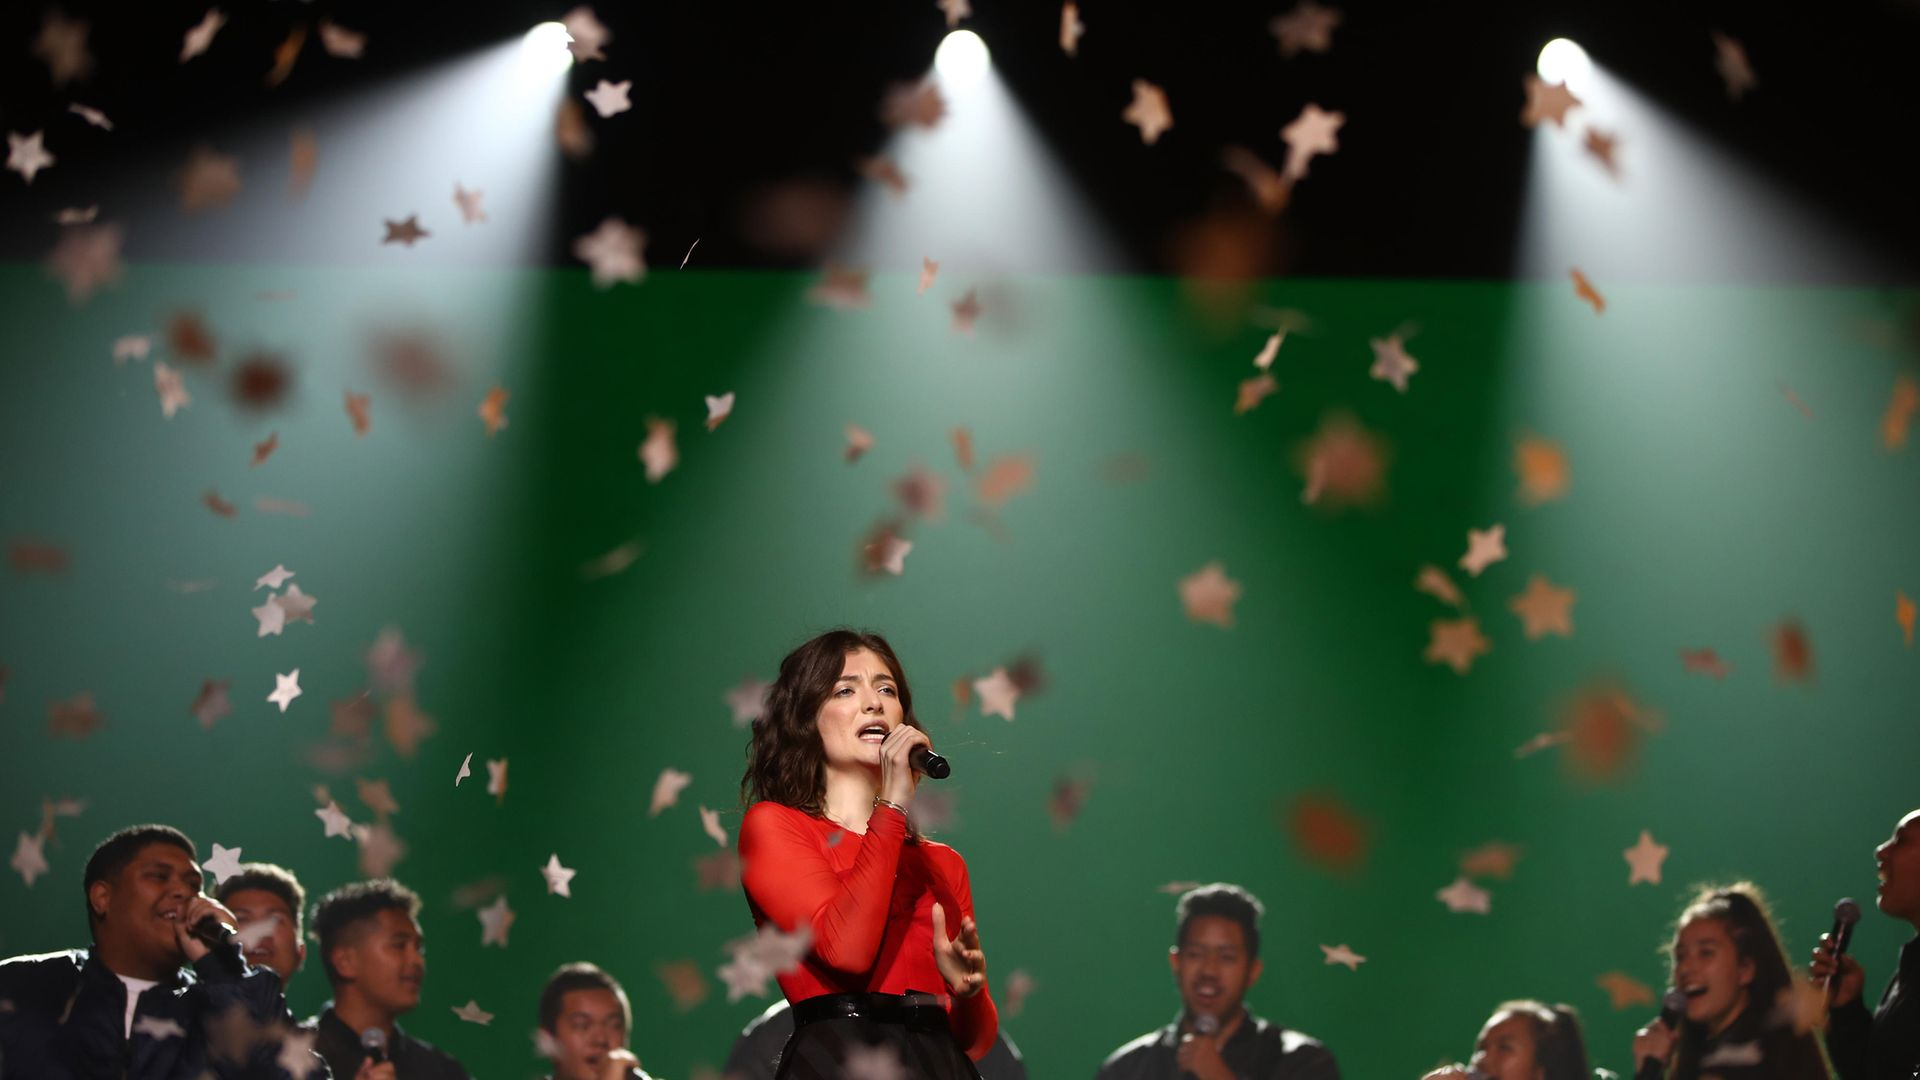 GOLDEN STAR: Lorde performs at the New Zealand Music Awards in Auckland, in 2017 - Credit: Getty Images